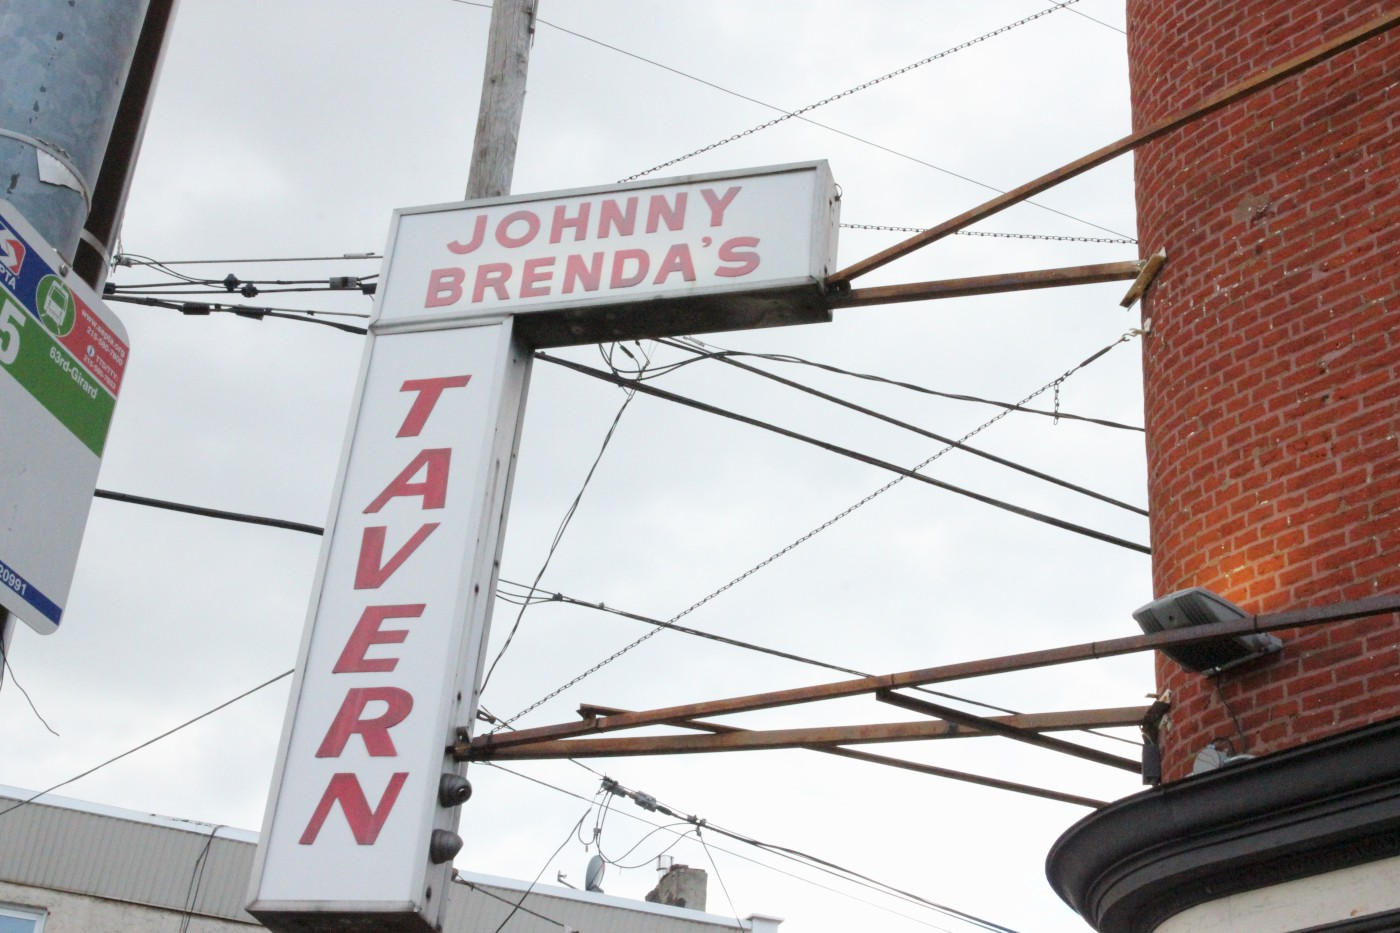 johnny brendas